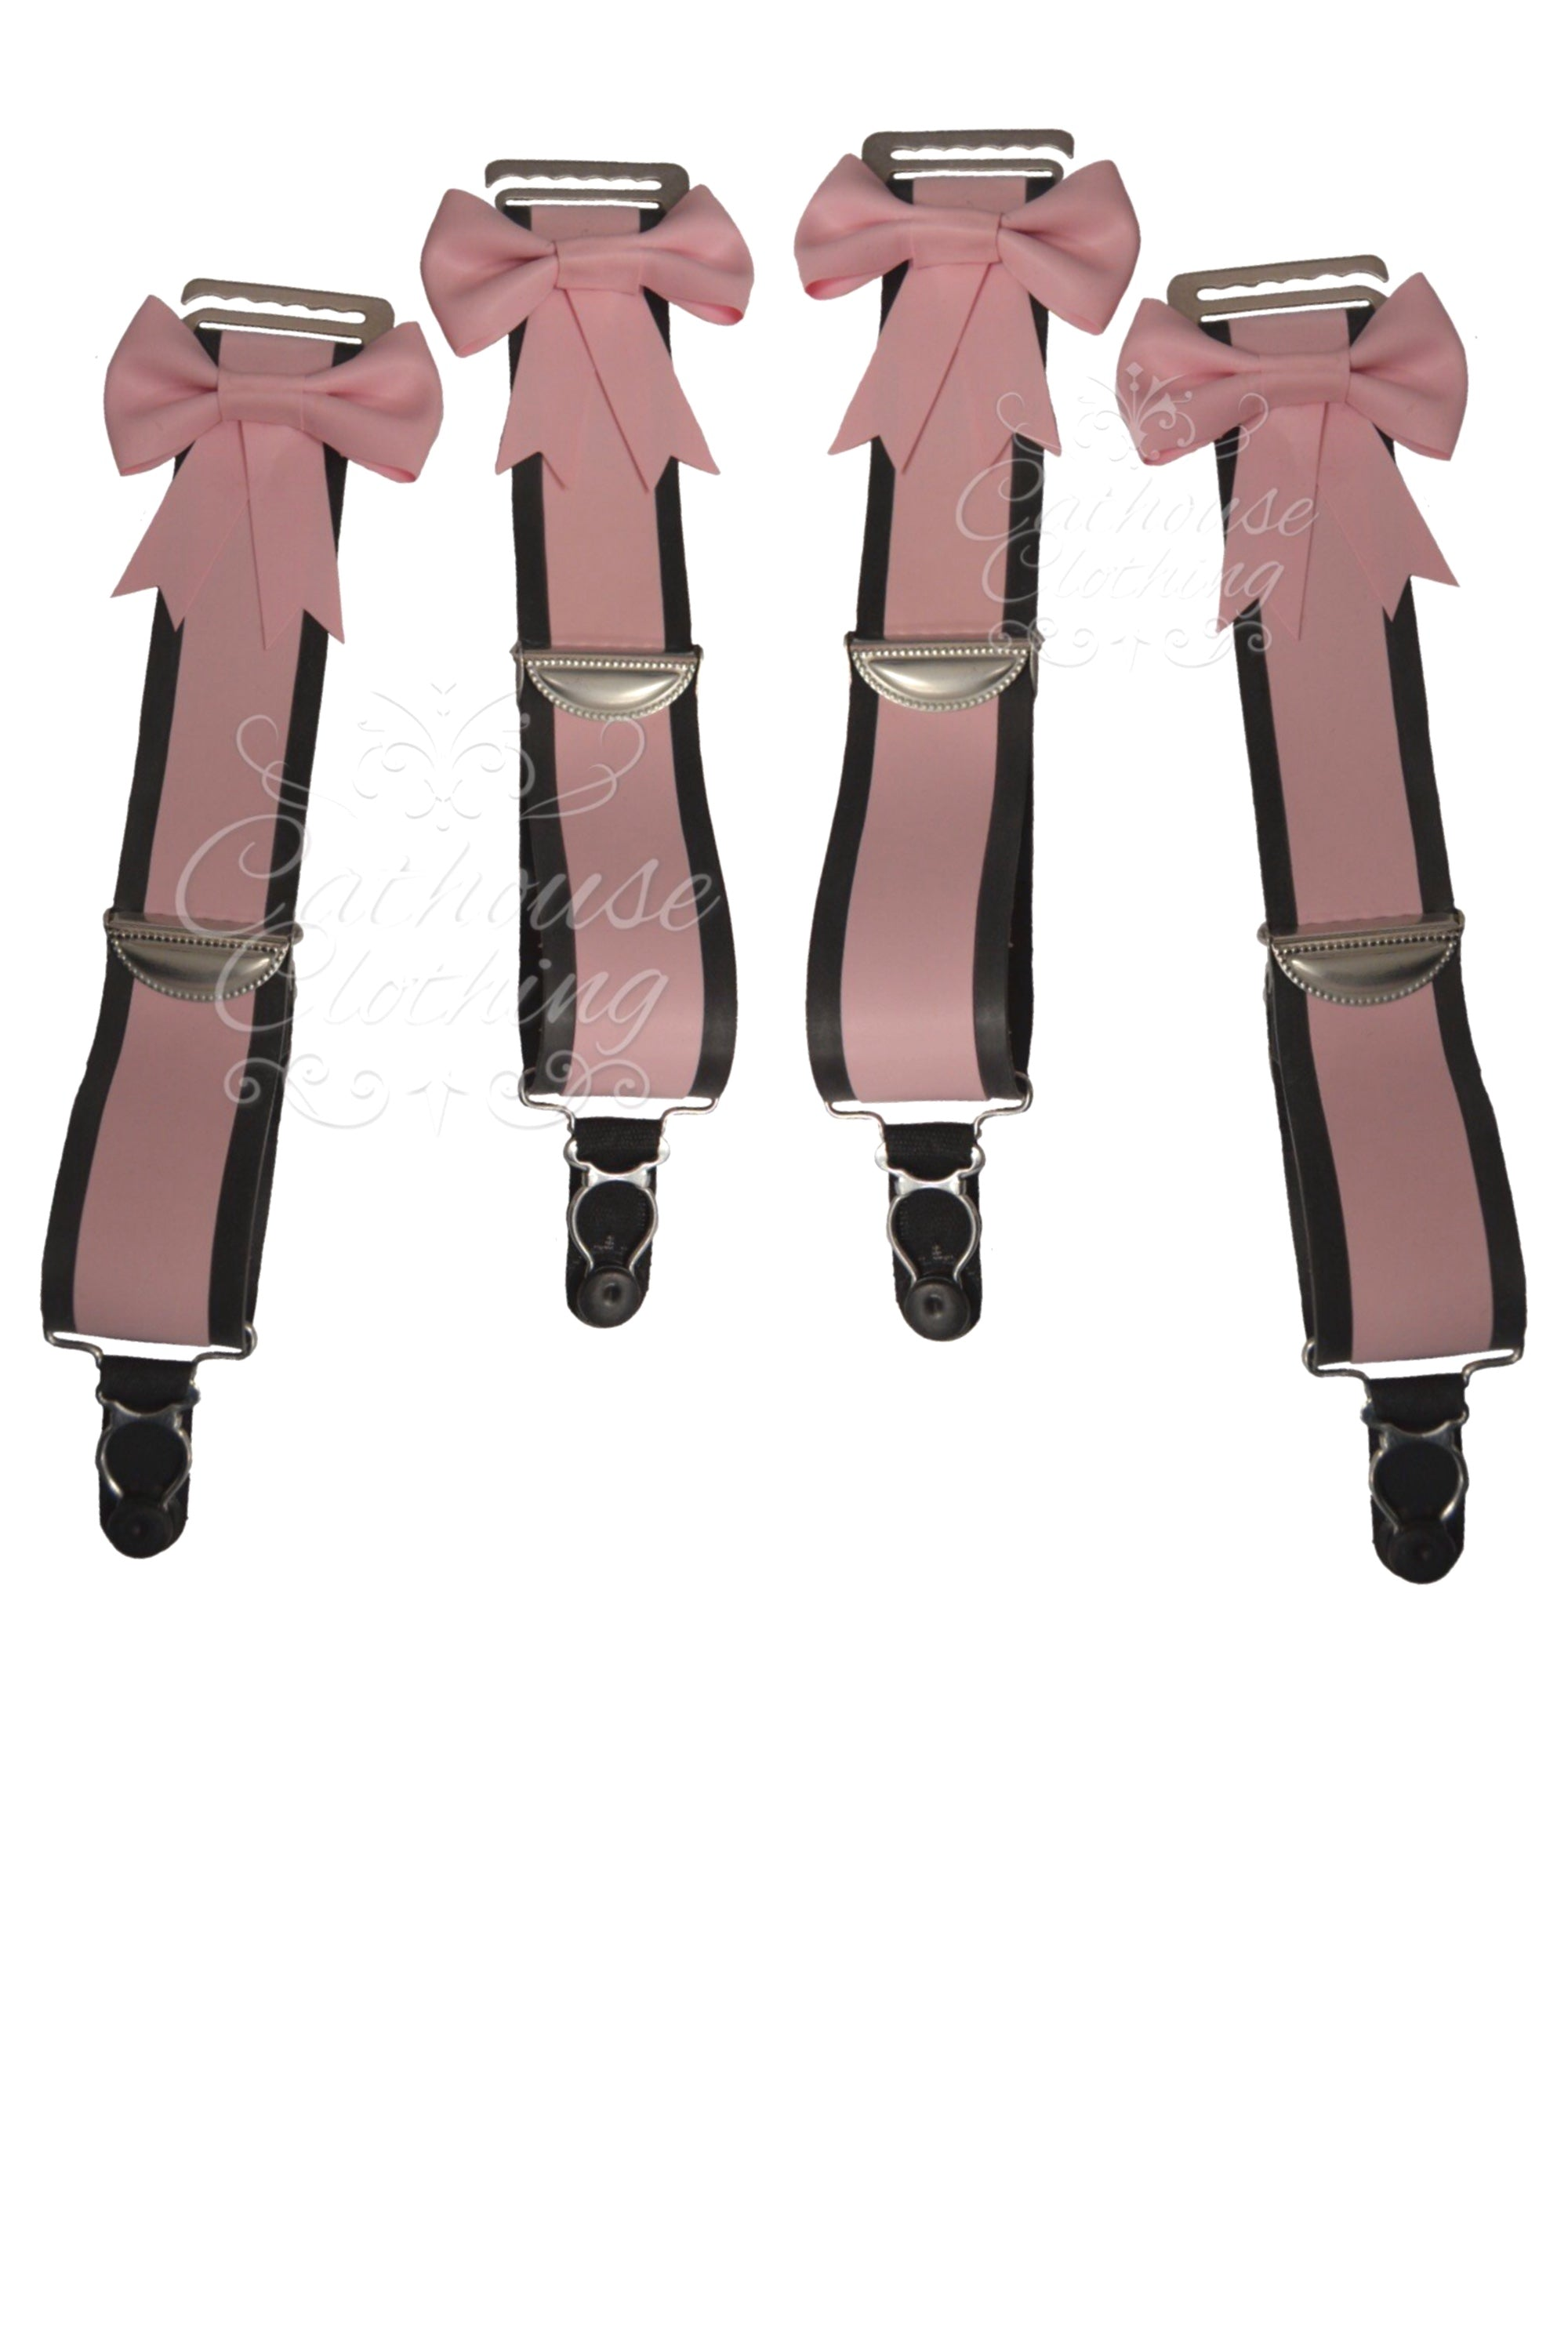 4 hook-on latex suspenders